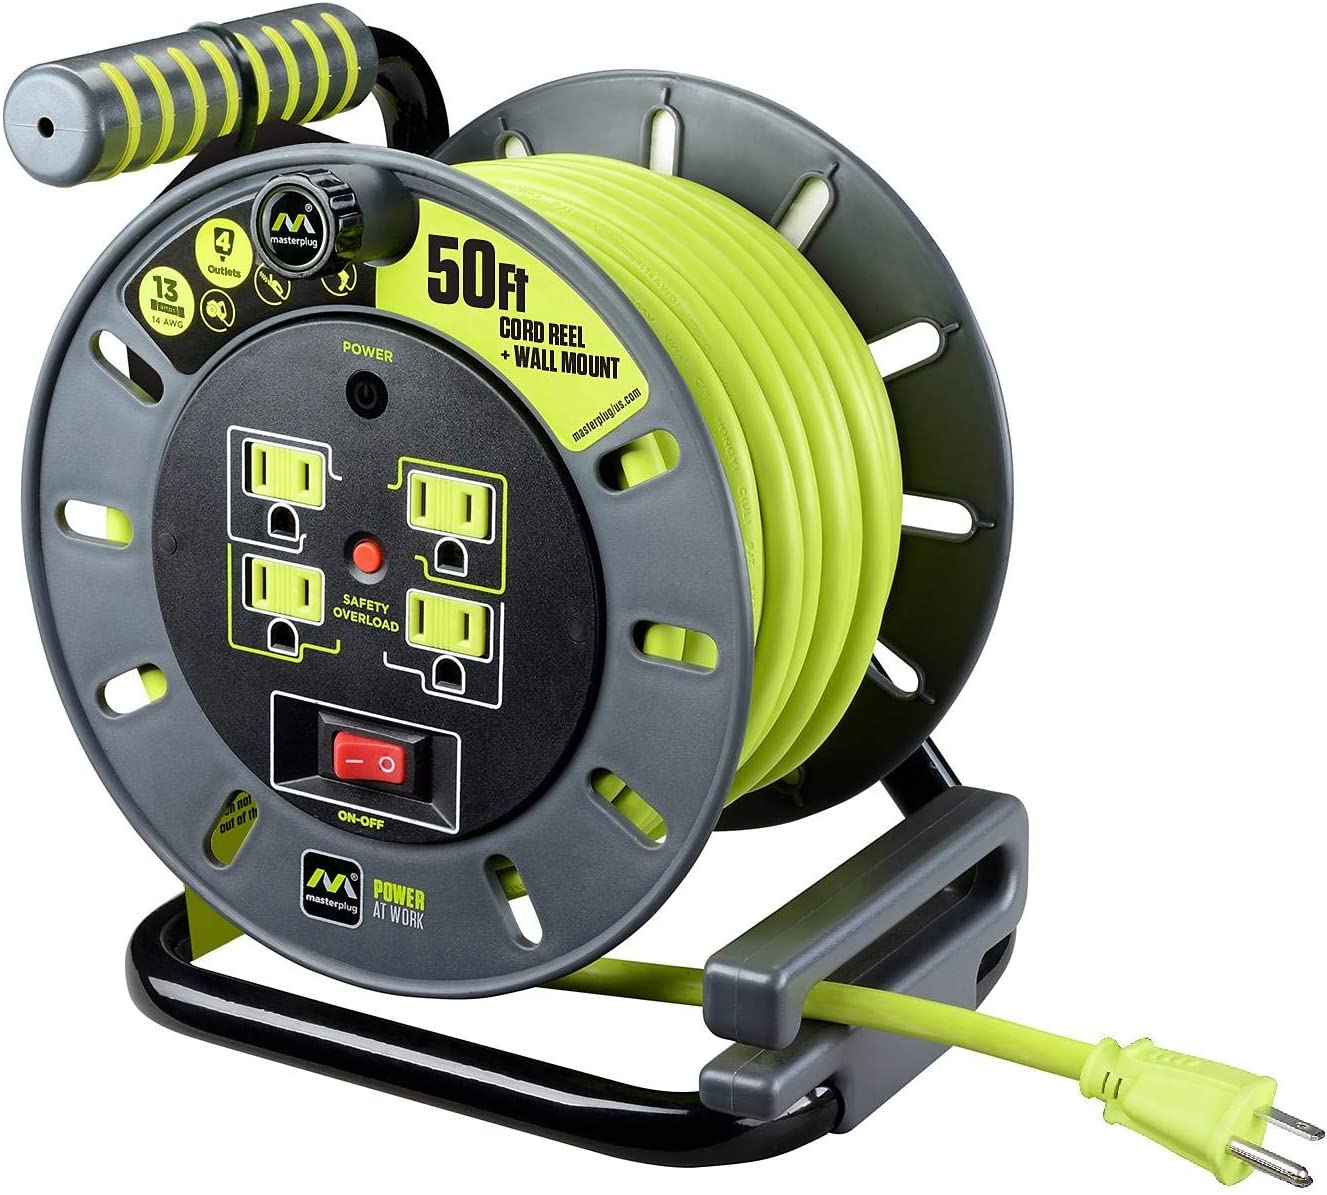 Masterplug Extension Cord Reel 50 Ft With Wall Mount Amazon Com